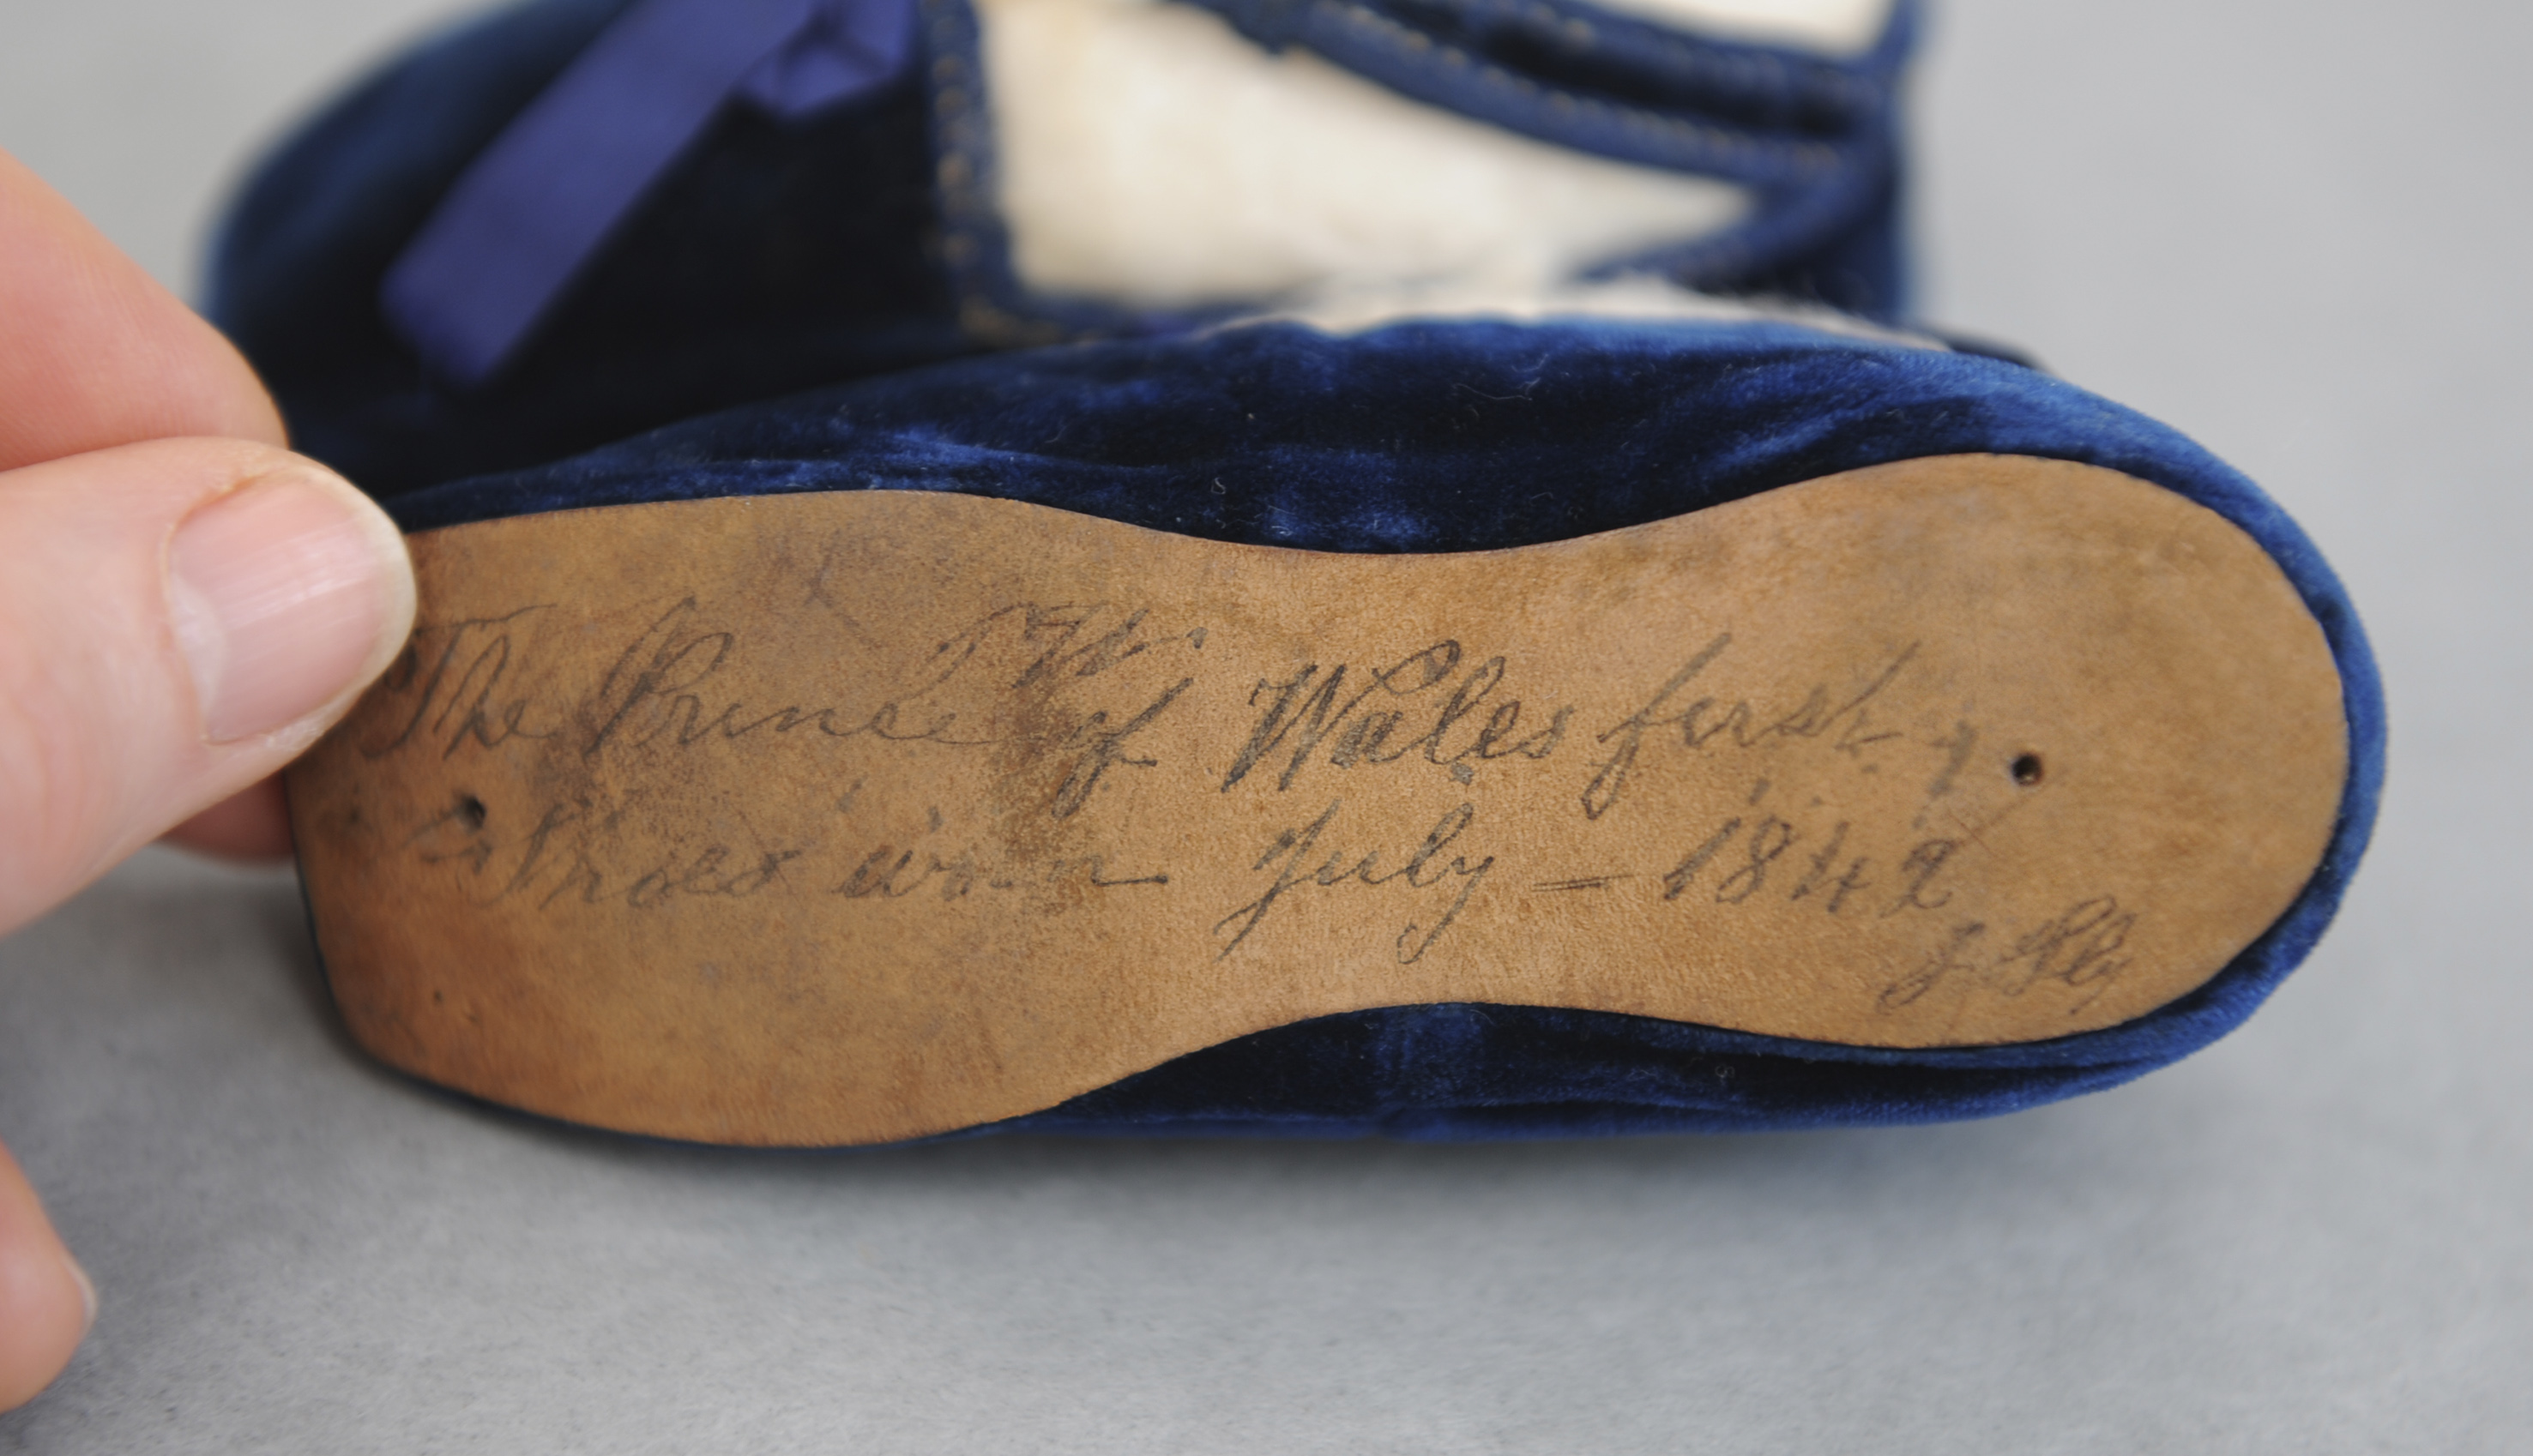 The inscription on the shoes